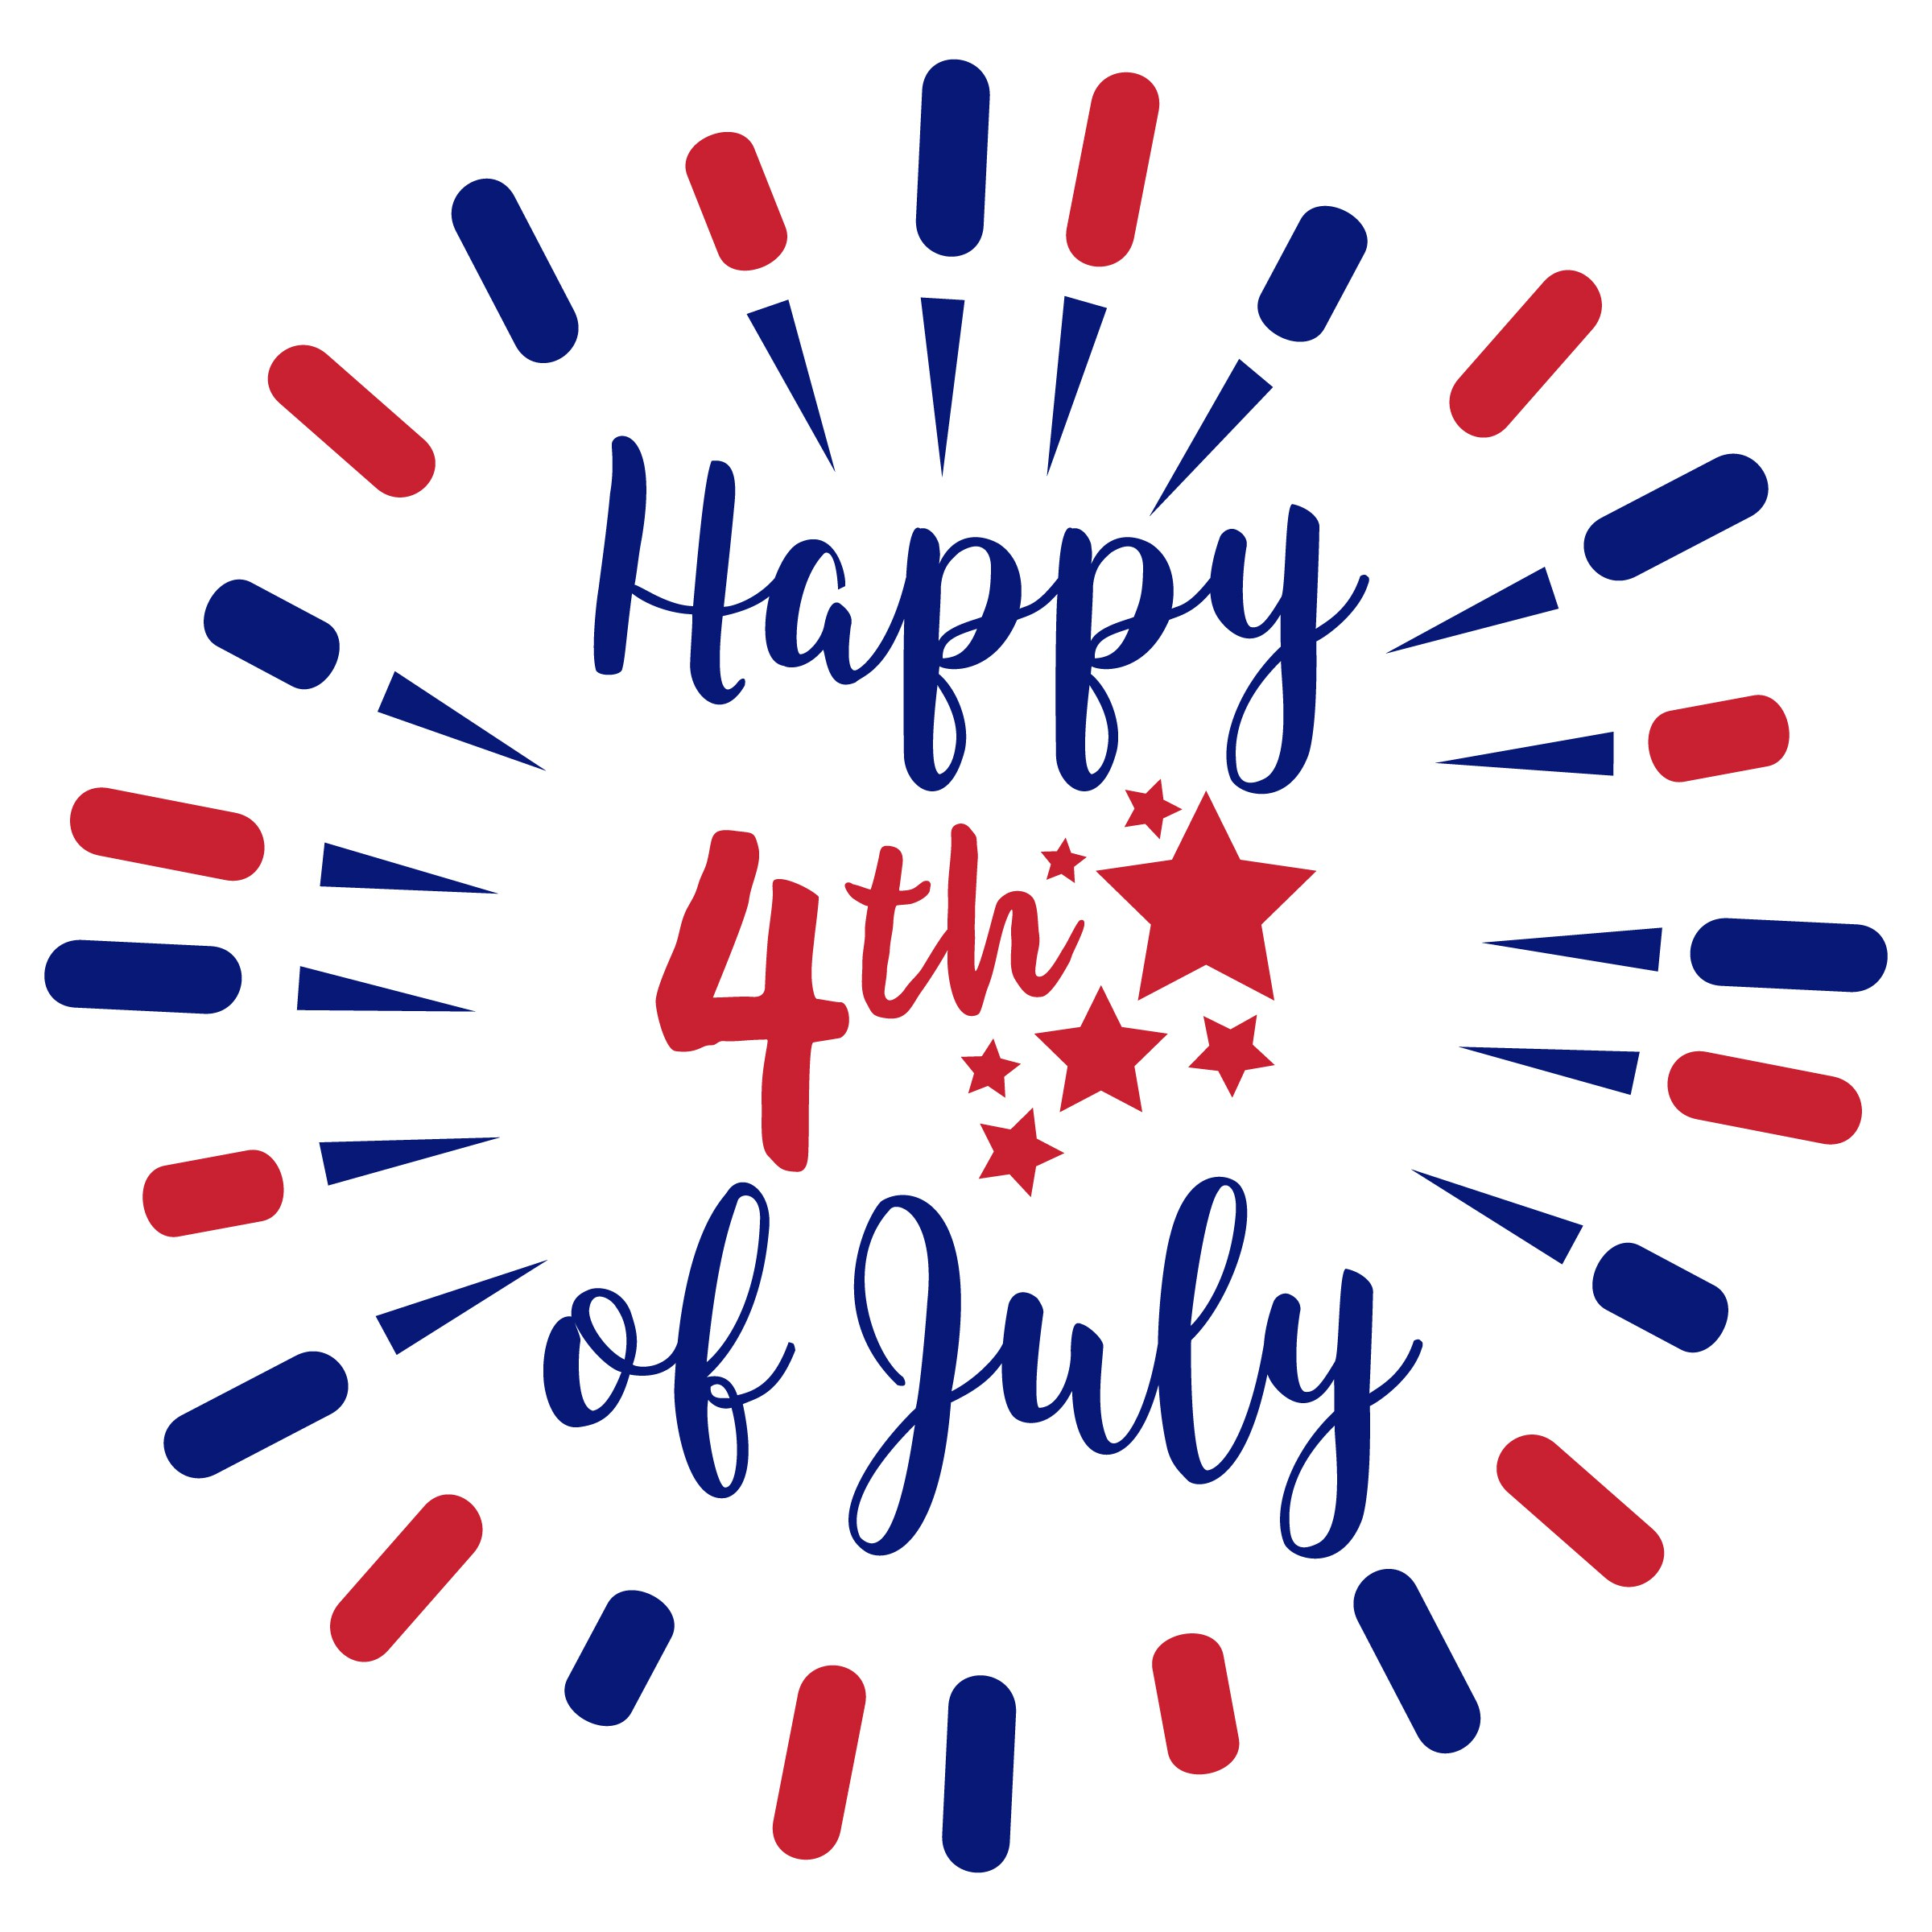 happy 4th of july clipart at getdrawings com free for personal use rh getdrawings com clip art fourth of july military free clipart fourth of july fireworks